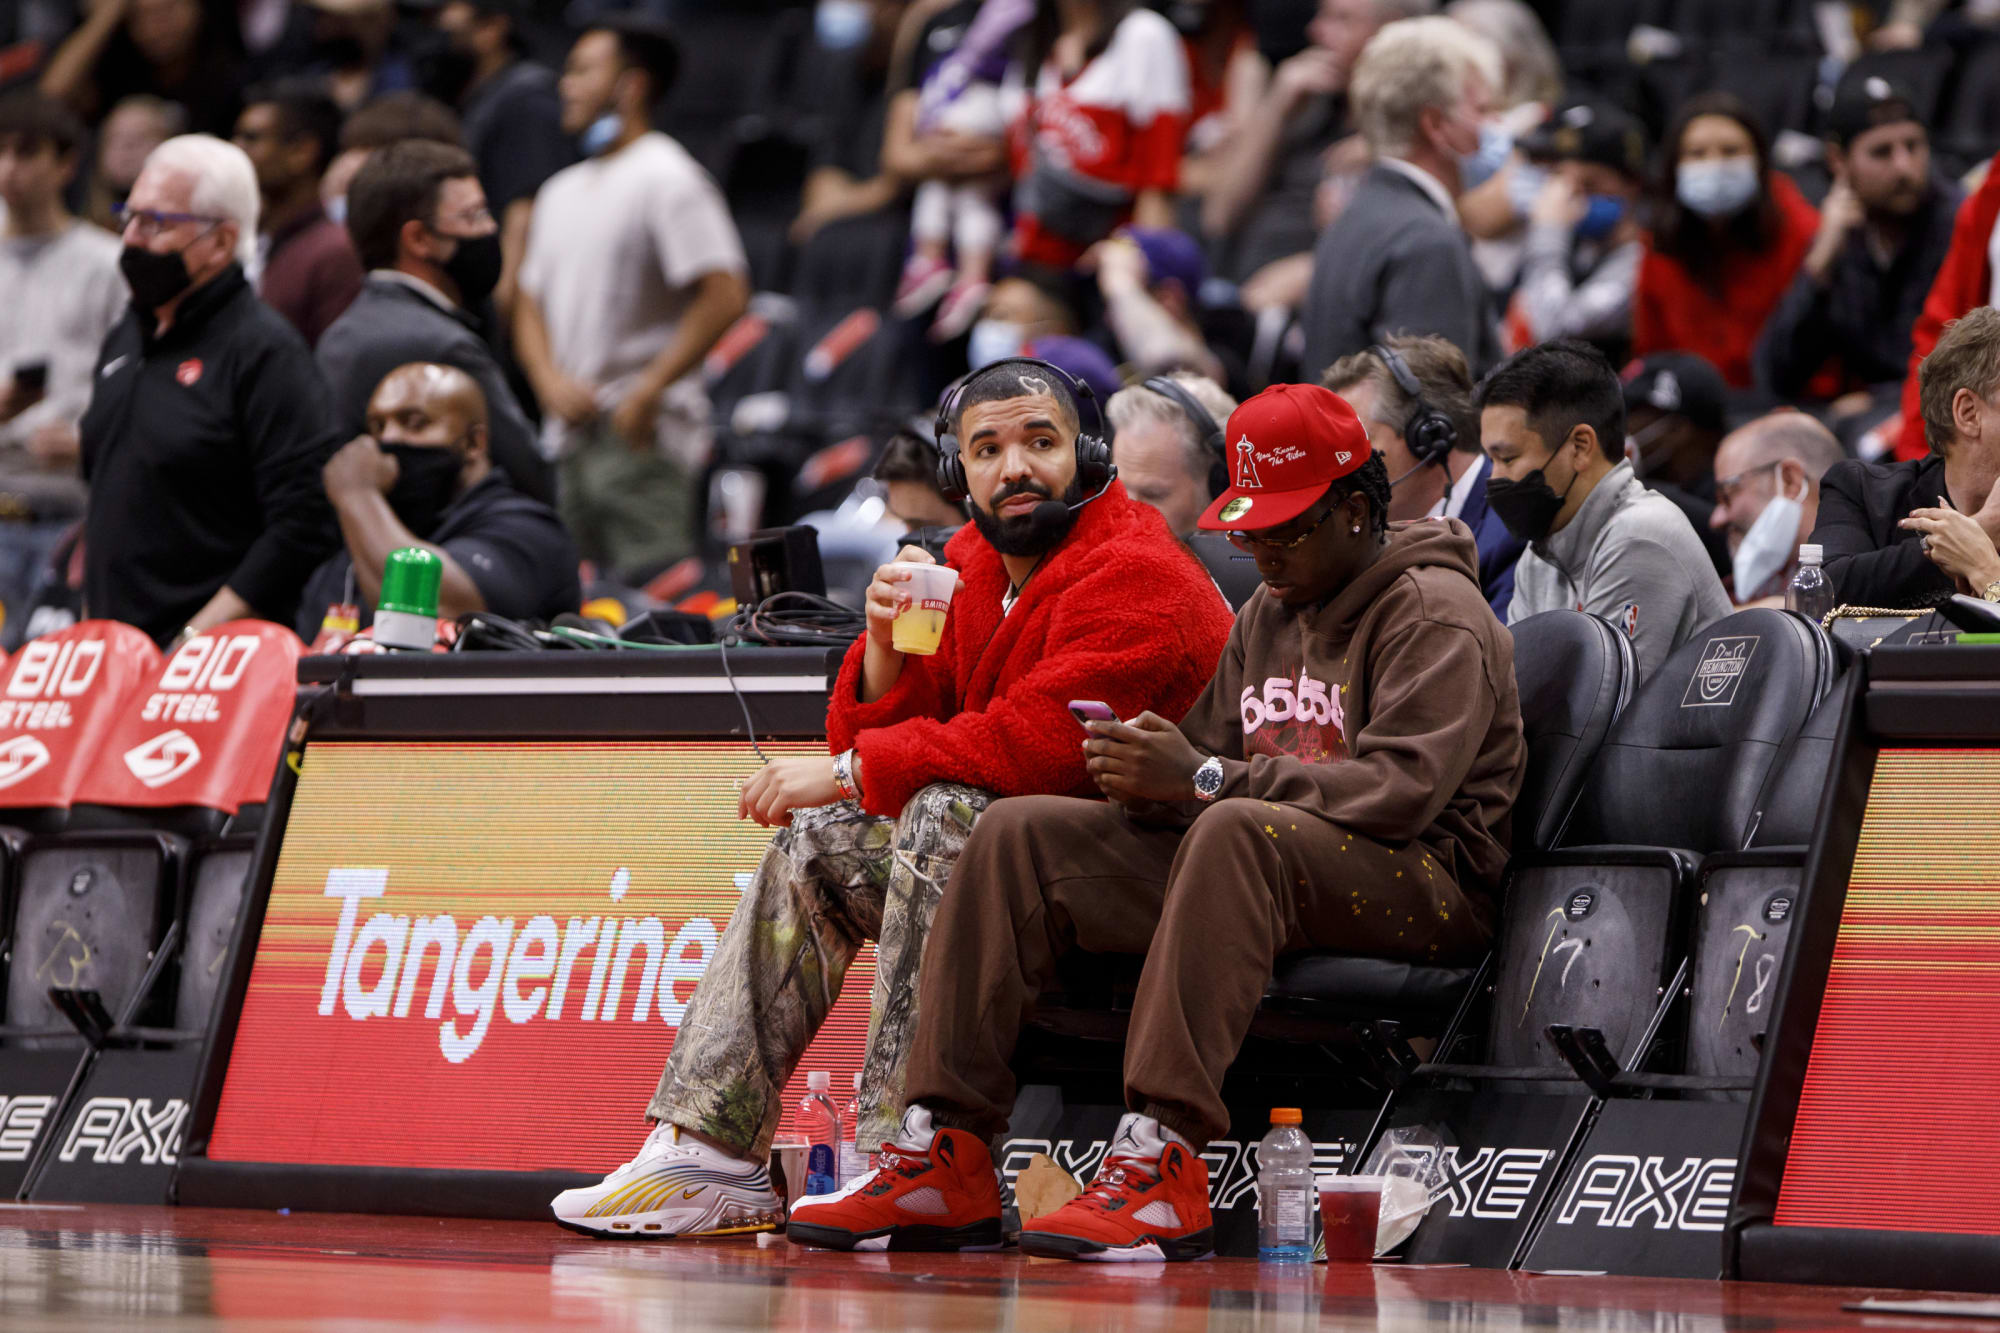 Raptors: Drake's preseason broadcasting was awesome, as expected